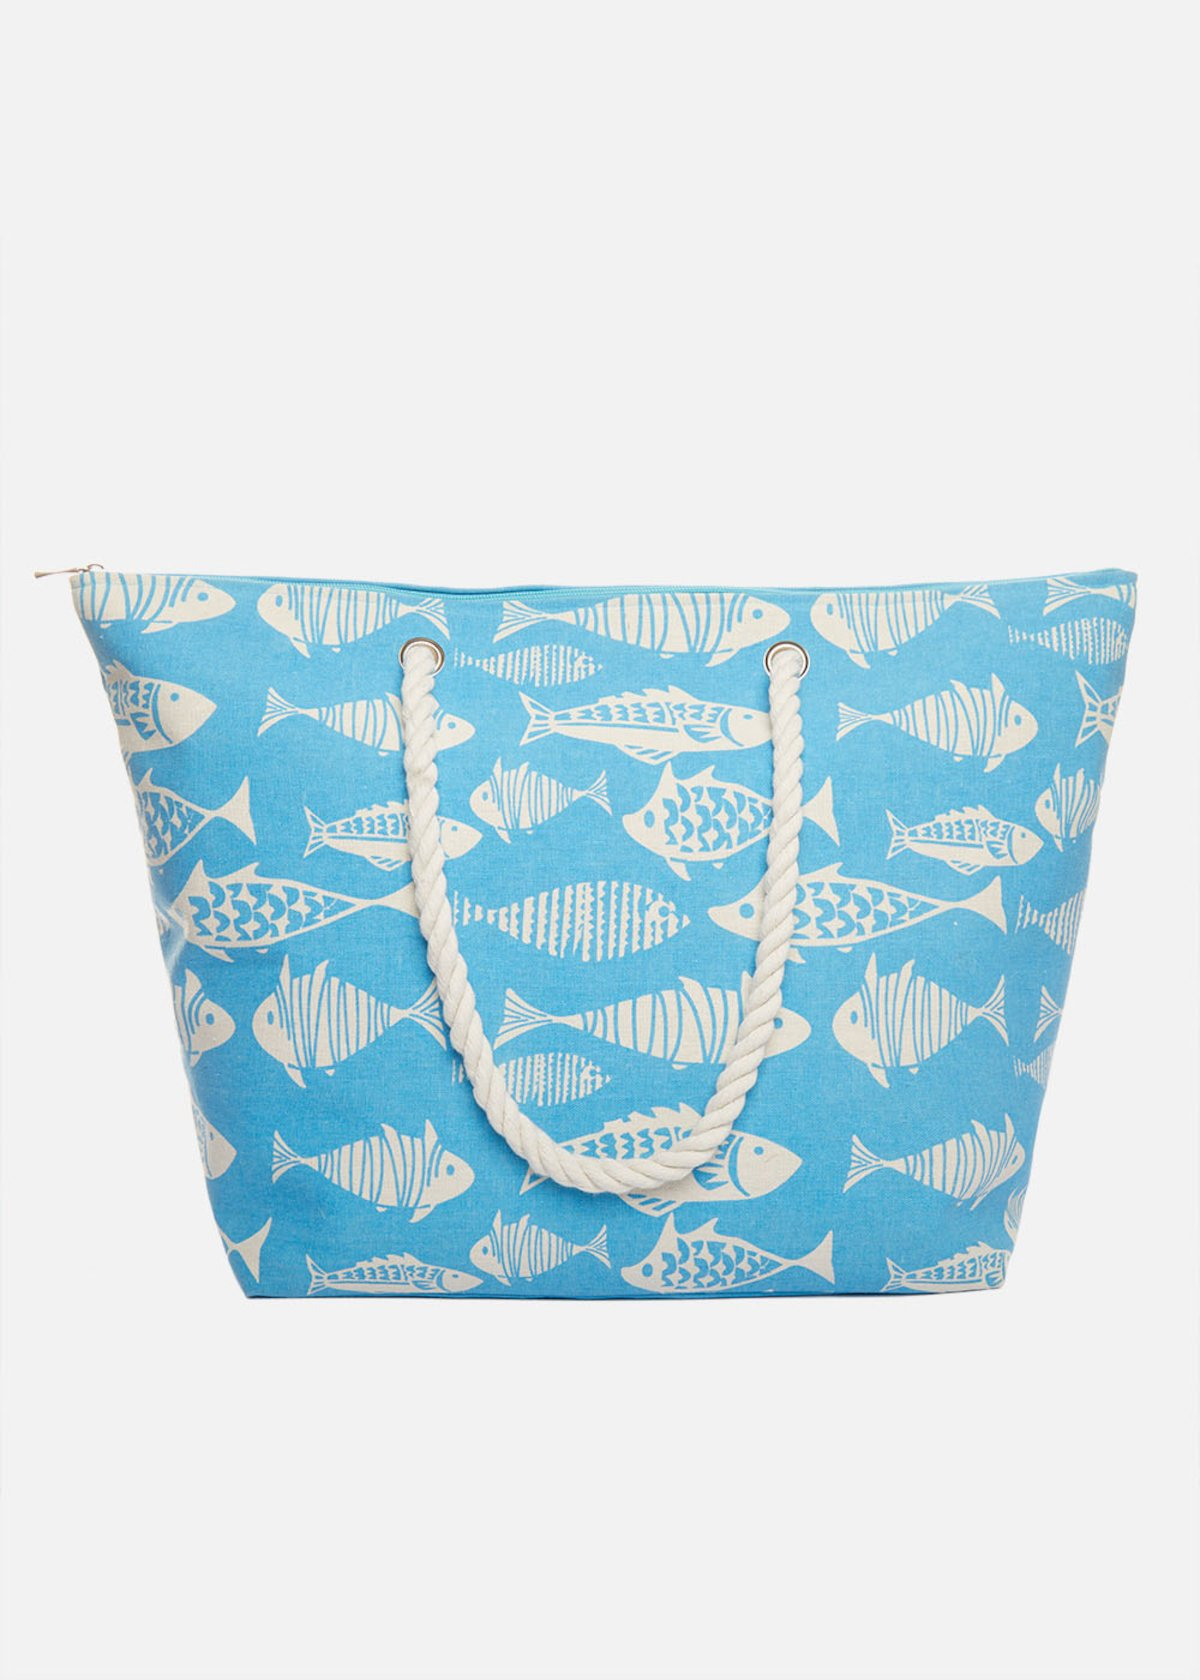 Shopping bag Binga fish printed with rope handles